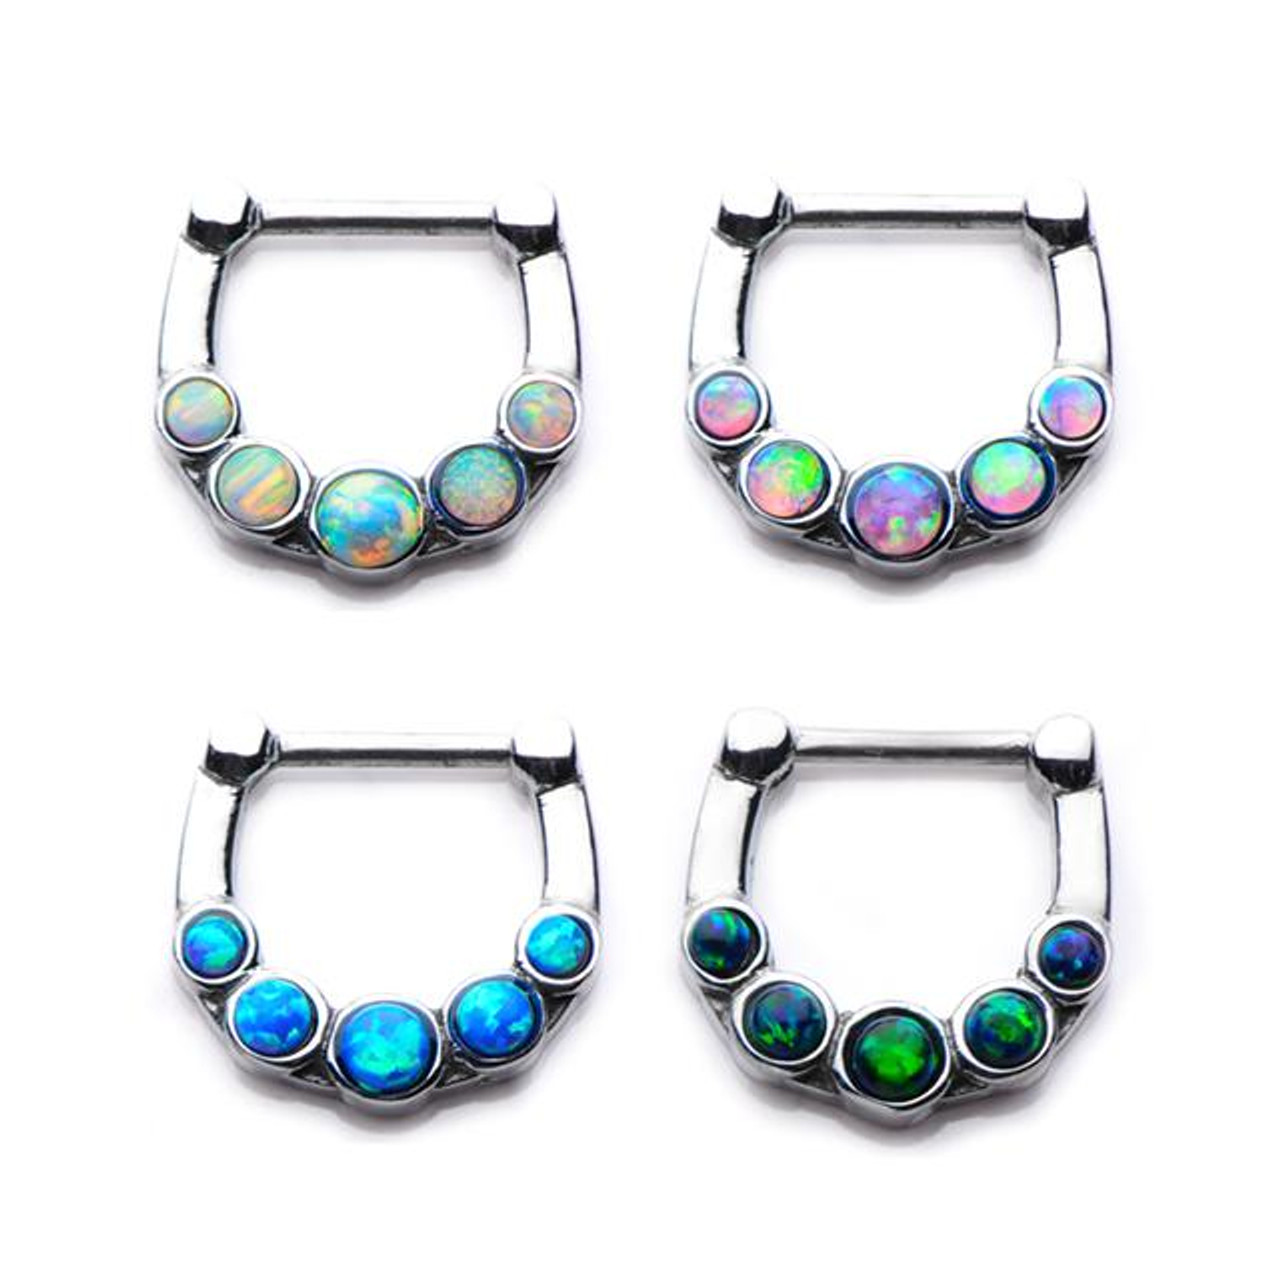 Opal Septum Clicker 16 Gauge 14g King S Body Jewelry